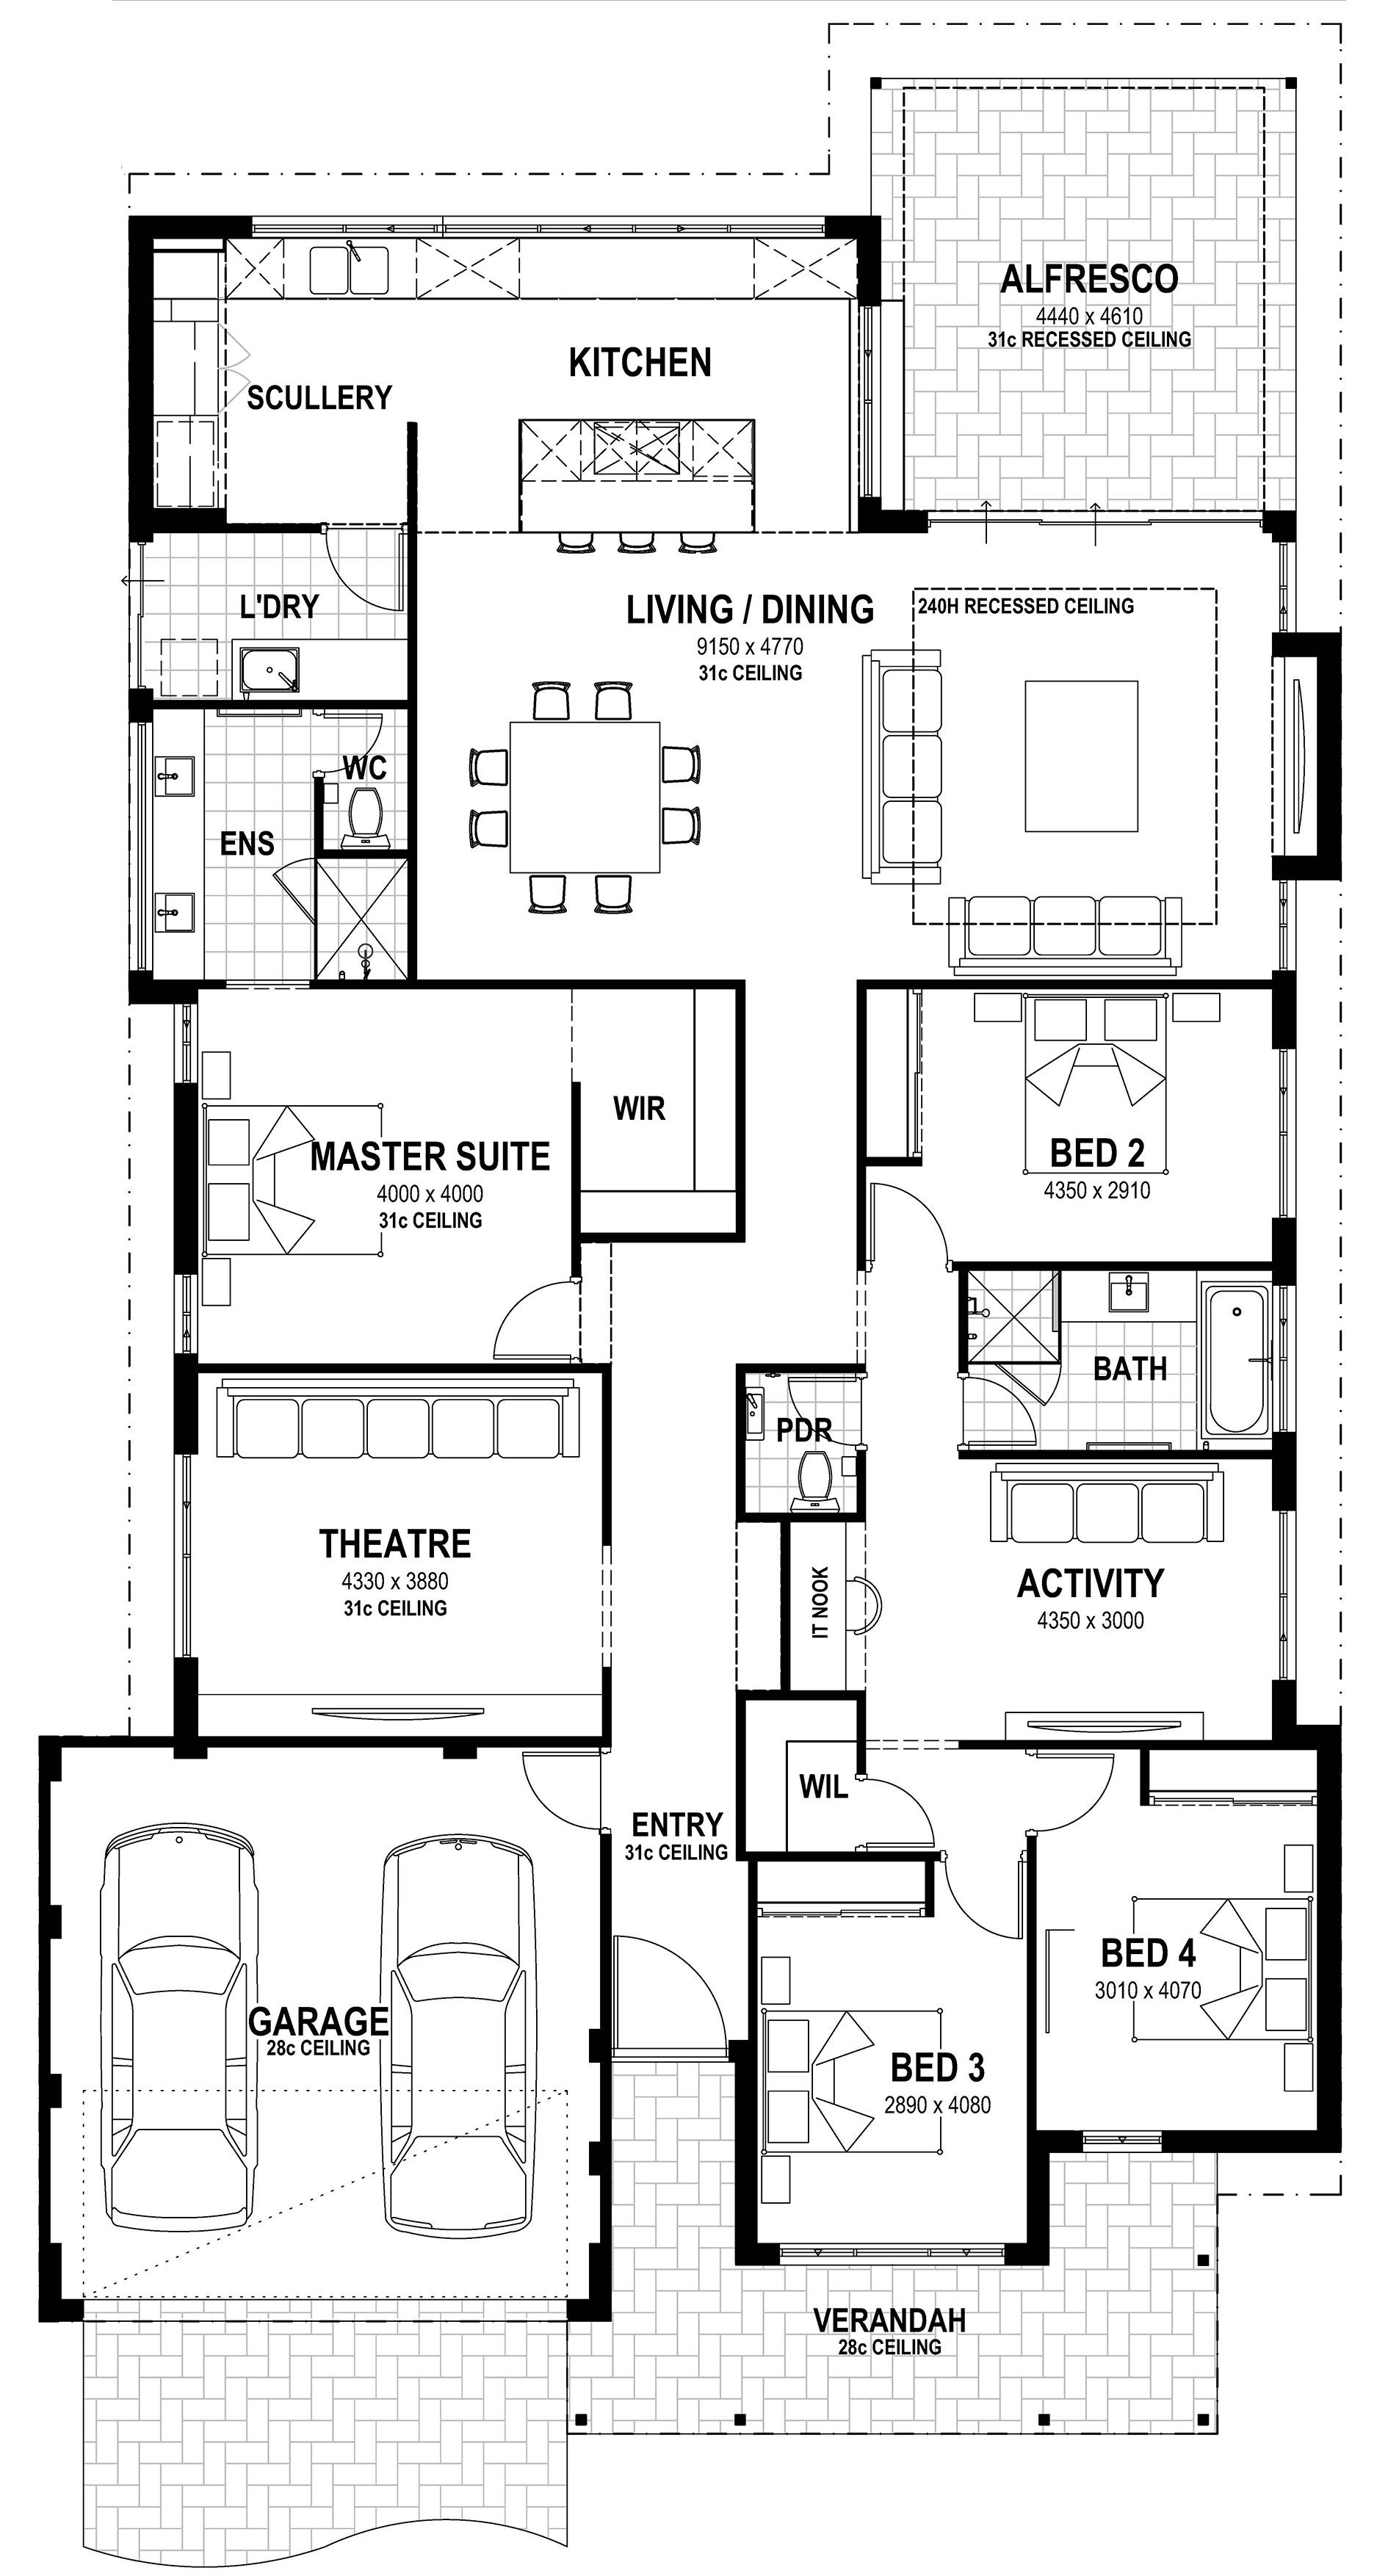 5 master bedroom house plans  Orchard  South West  Lot  Pascoe Way floorplan  house plans